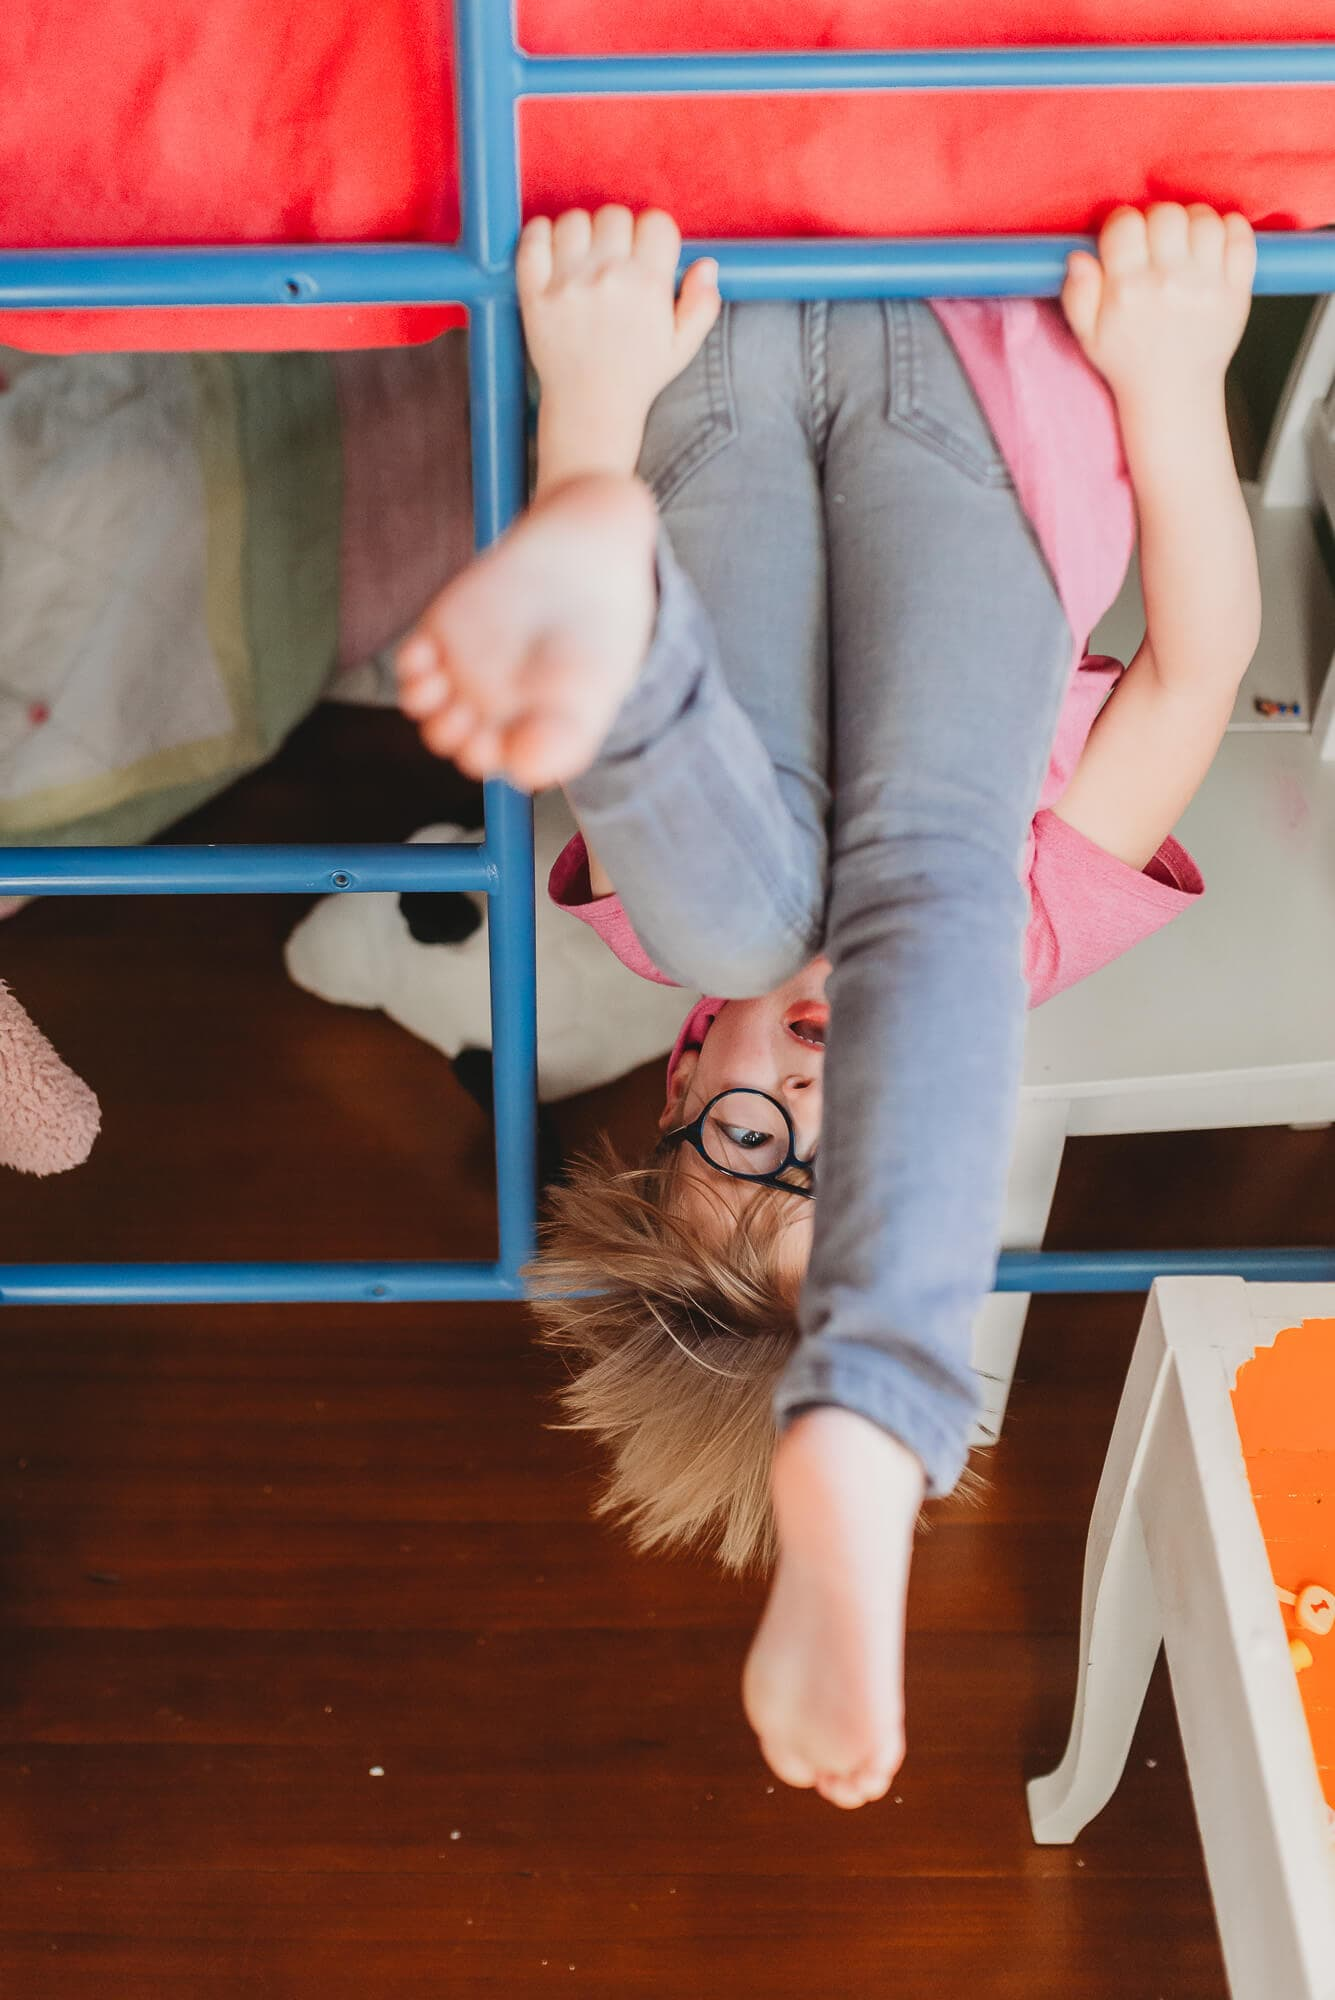 girl hangs upside down from bunk bed during lifestyle session